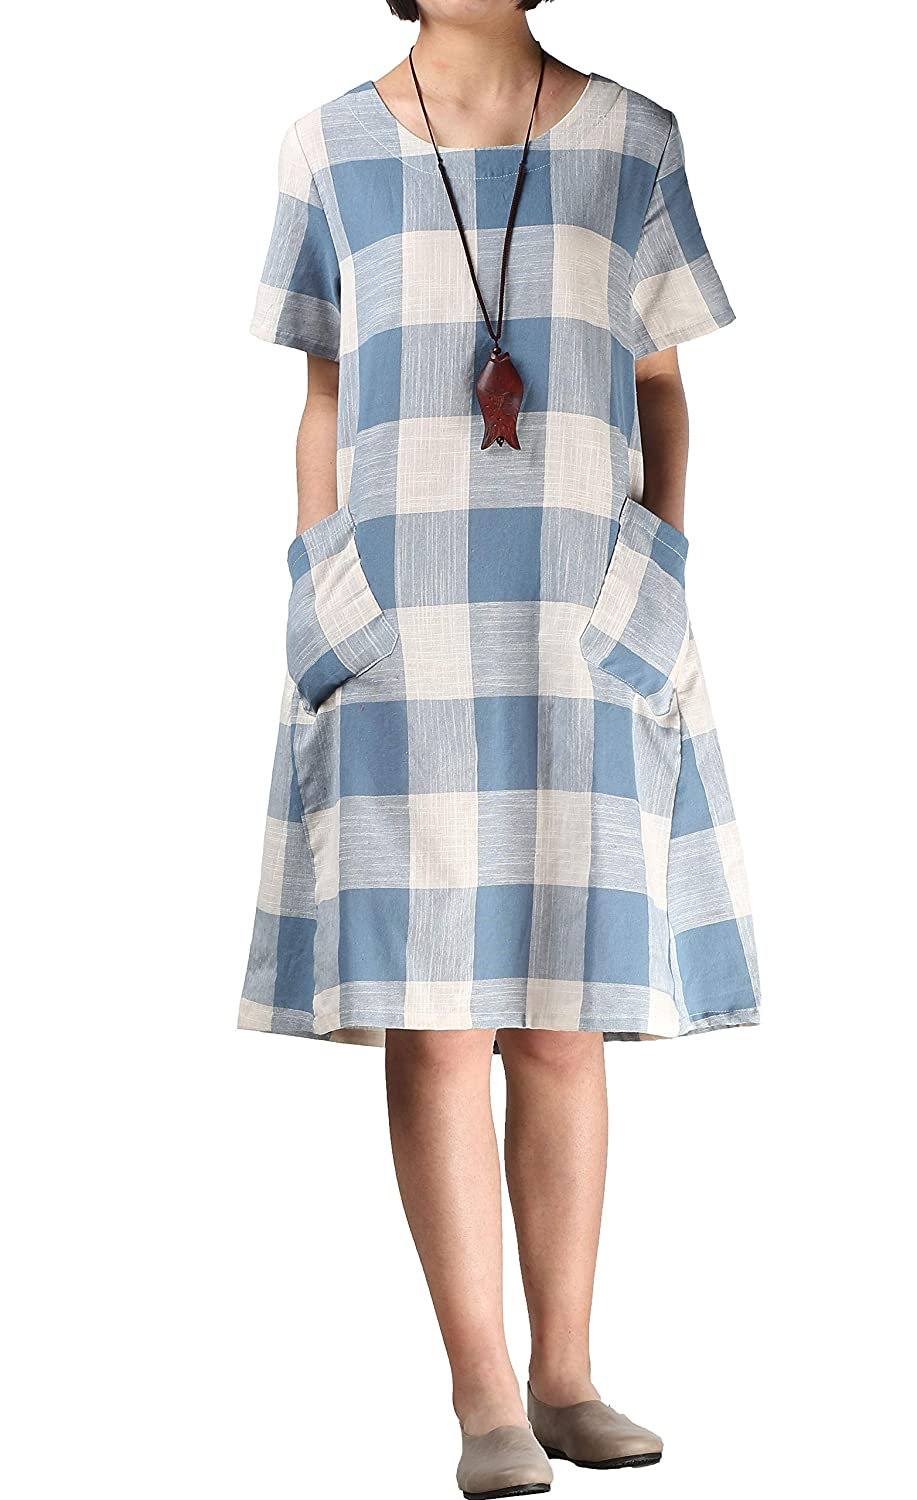 1920s Day Dresses, Tea Dresses, Mature Dresses with Sleeves Mordenmiss Womens Cotton Linen Dress Large Checked Plaid Shirt Dress with Pockets $35.00 AT vintagedancer.com